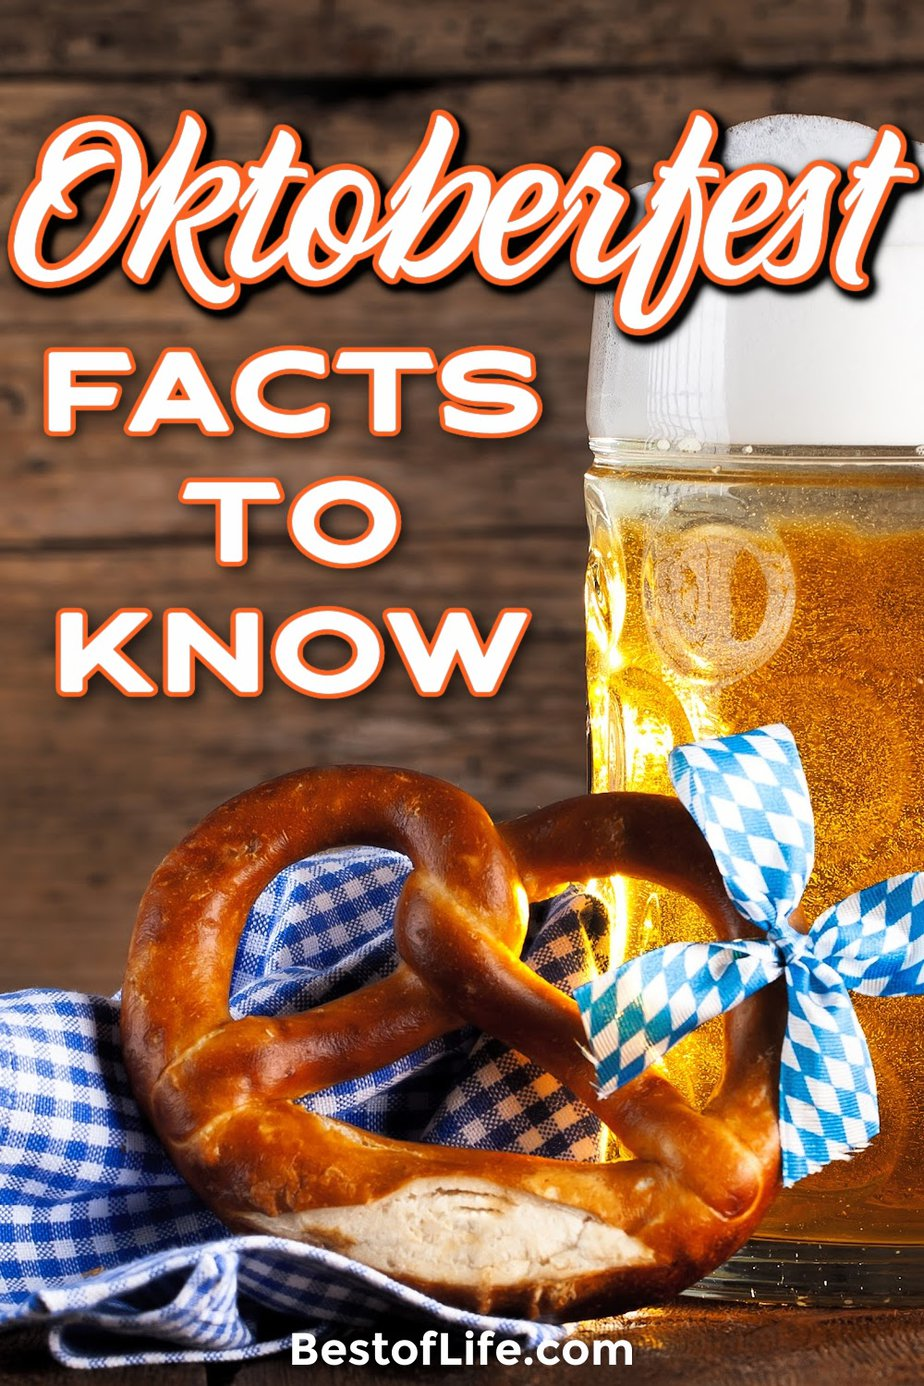 You can make the most of your Oktoberfest celebrations if you know all of the fun facts behind this favorite fall tradition. What is Oktoberfest   Oktoberfest Recipes   Beer Holidays   Oktoberfest Ideas   When is Oktoberfest   Oktoberfest History   Facts About Oktoberfest #oktoberfest #beerlover via @thebestoflife